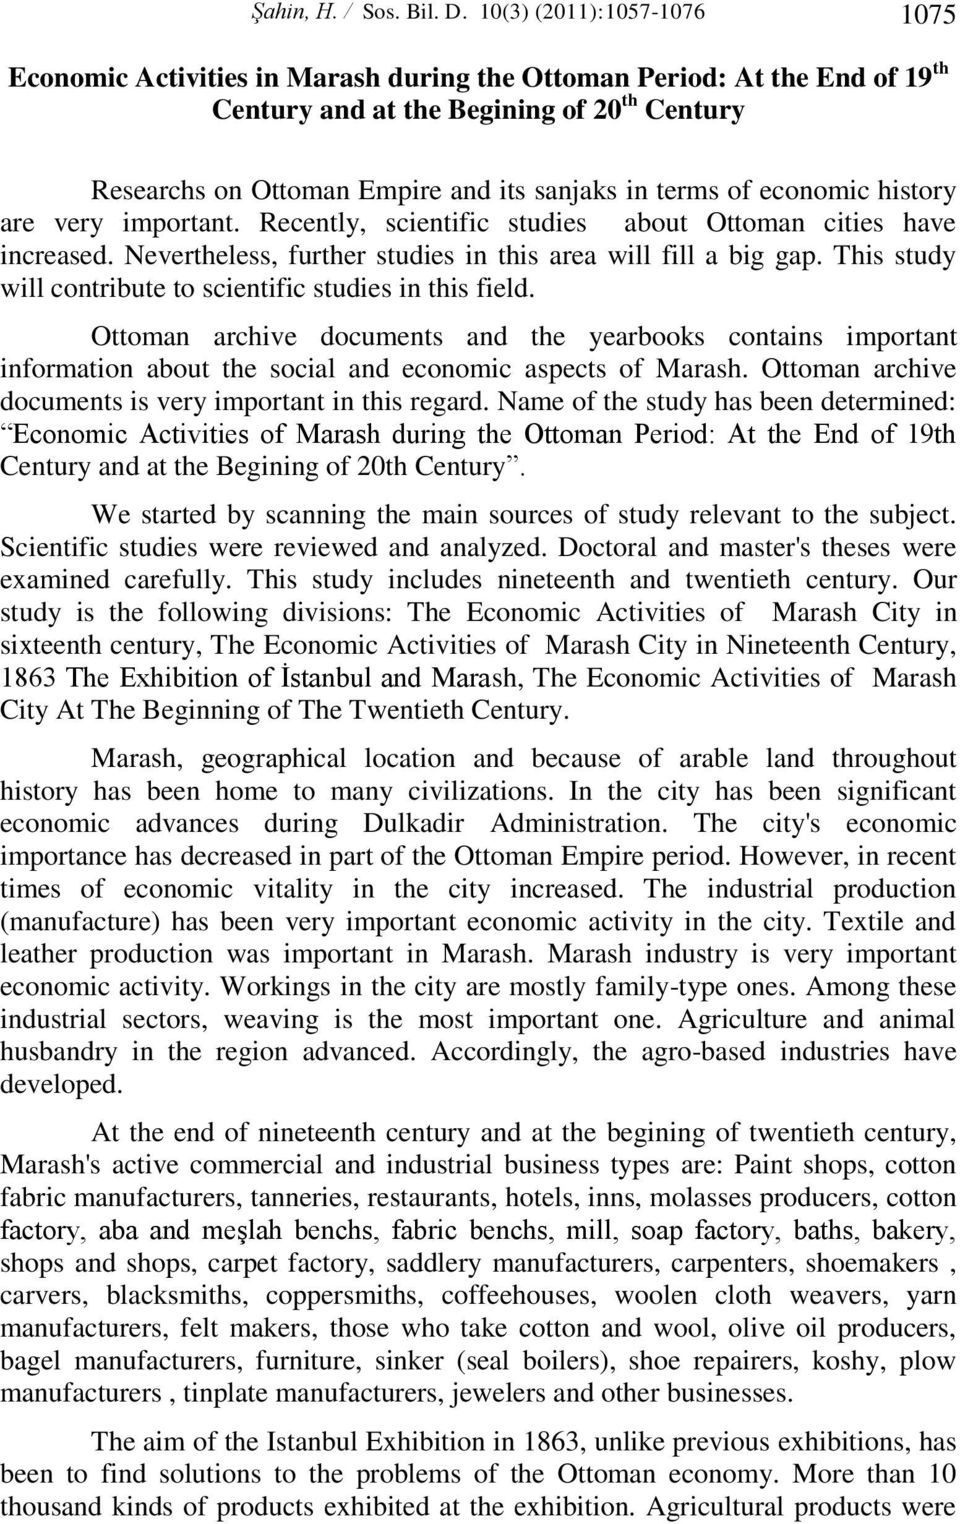 terms of economic history are very important. Recently, scientific studies about Ottoman cities have increased. Nevertheless, further studies in this area will fill a big gap.